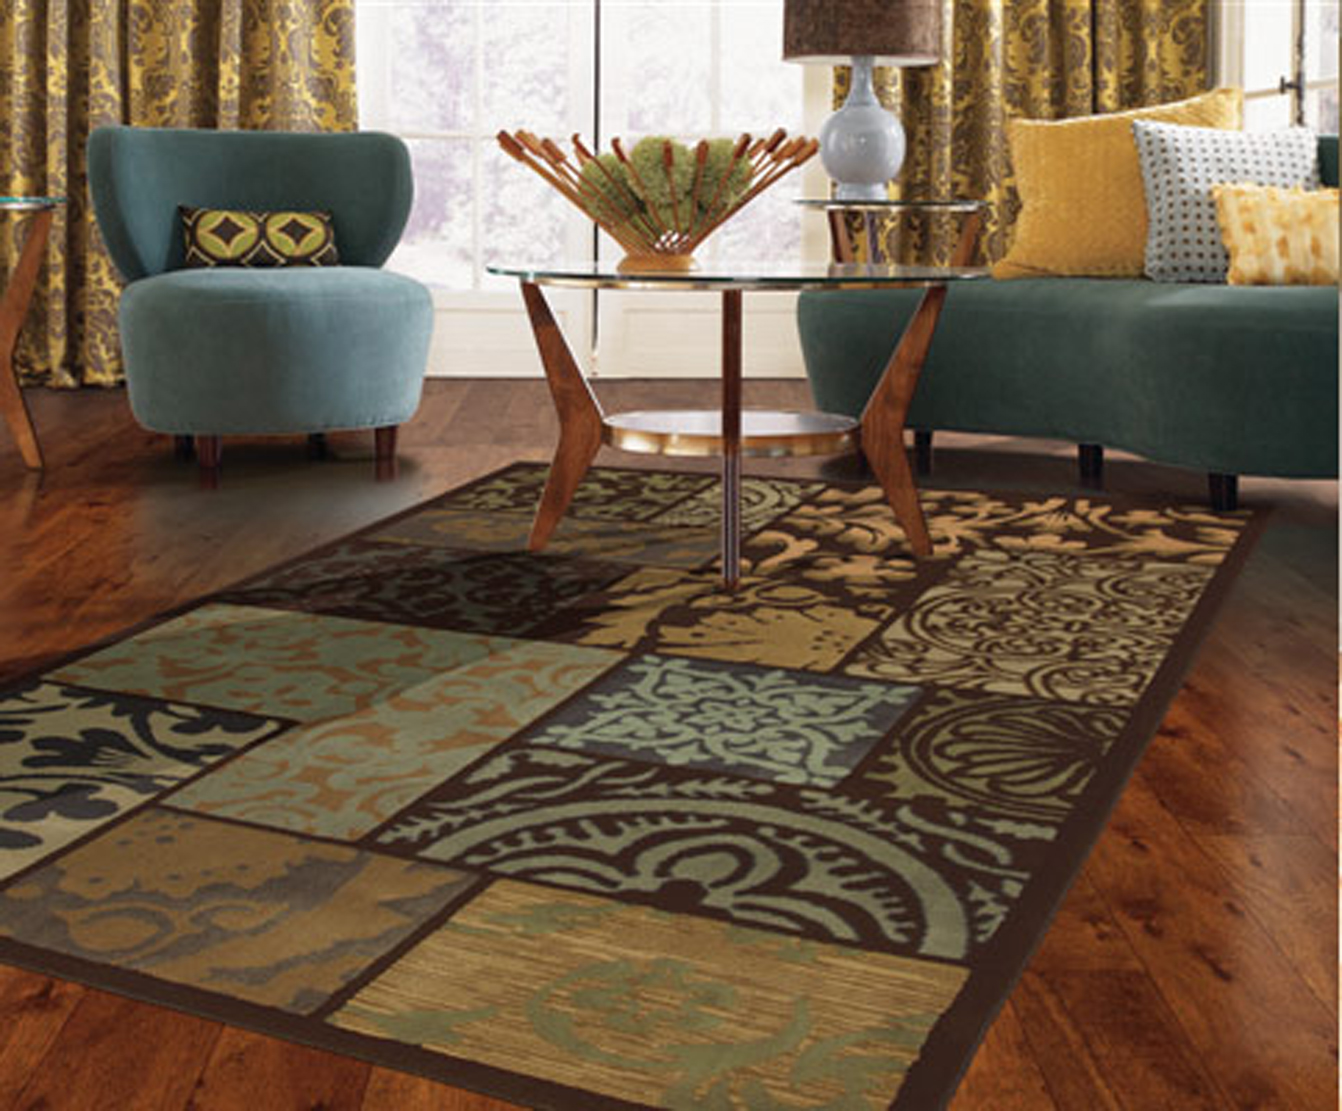 Colorful area rugs unique rugs for the living room - Living room area rugs ...